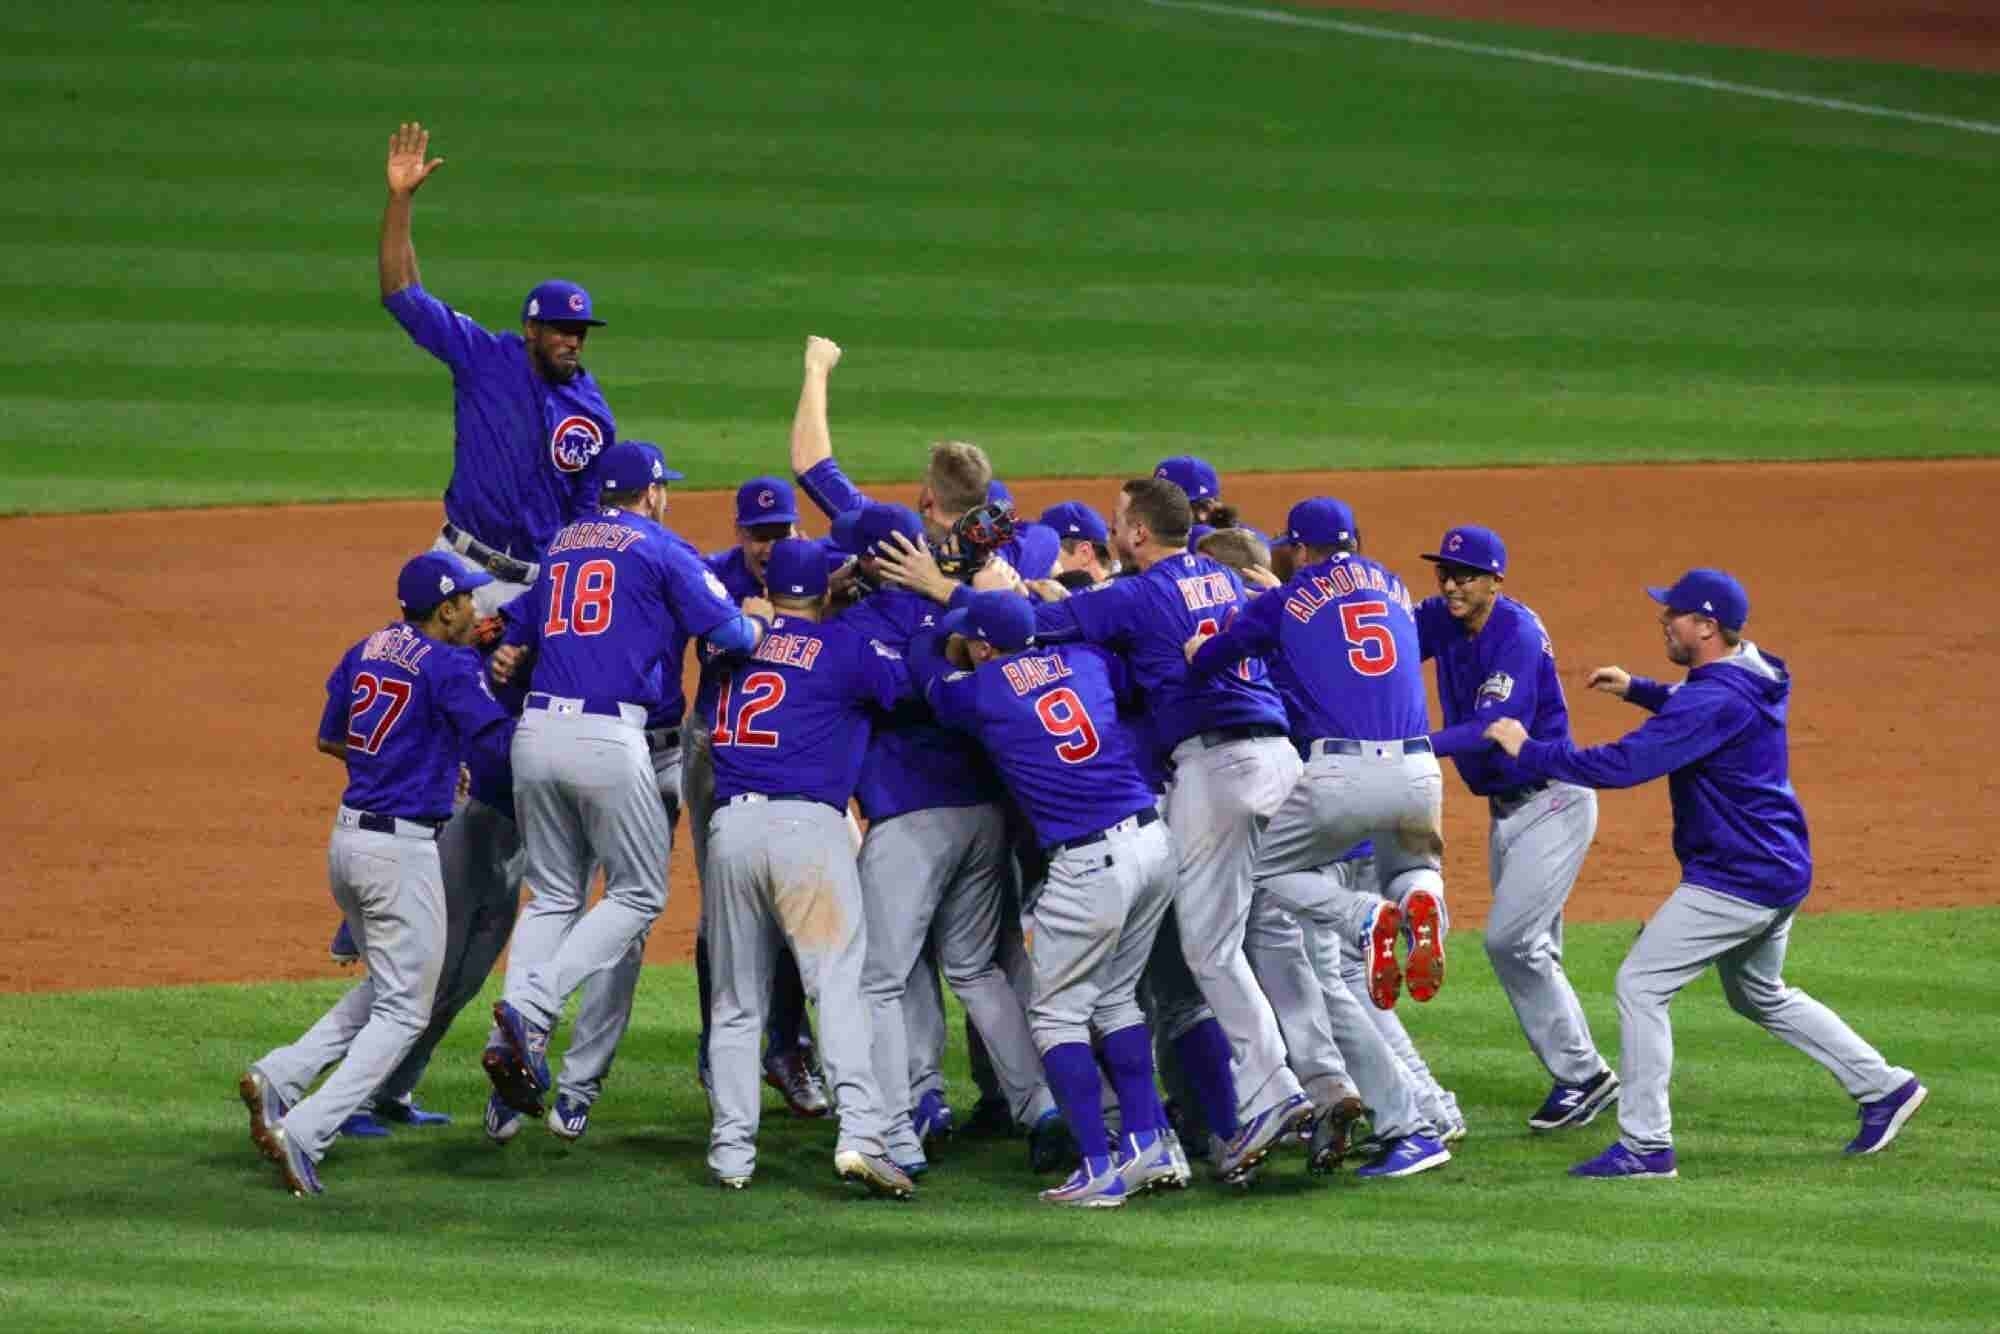 5 Inspiring Lessons from the Cubs's Journey to the World Series